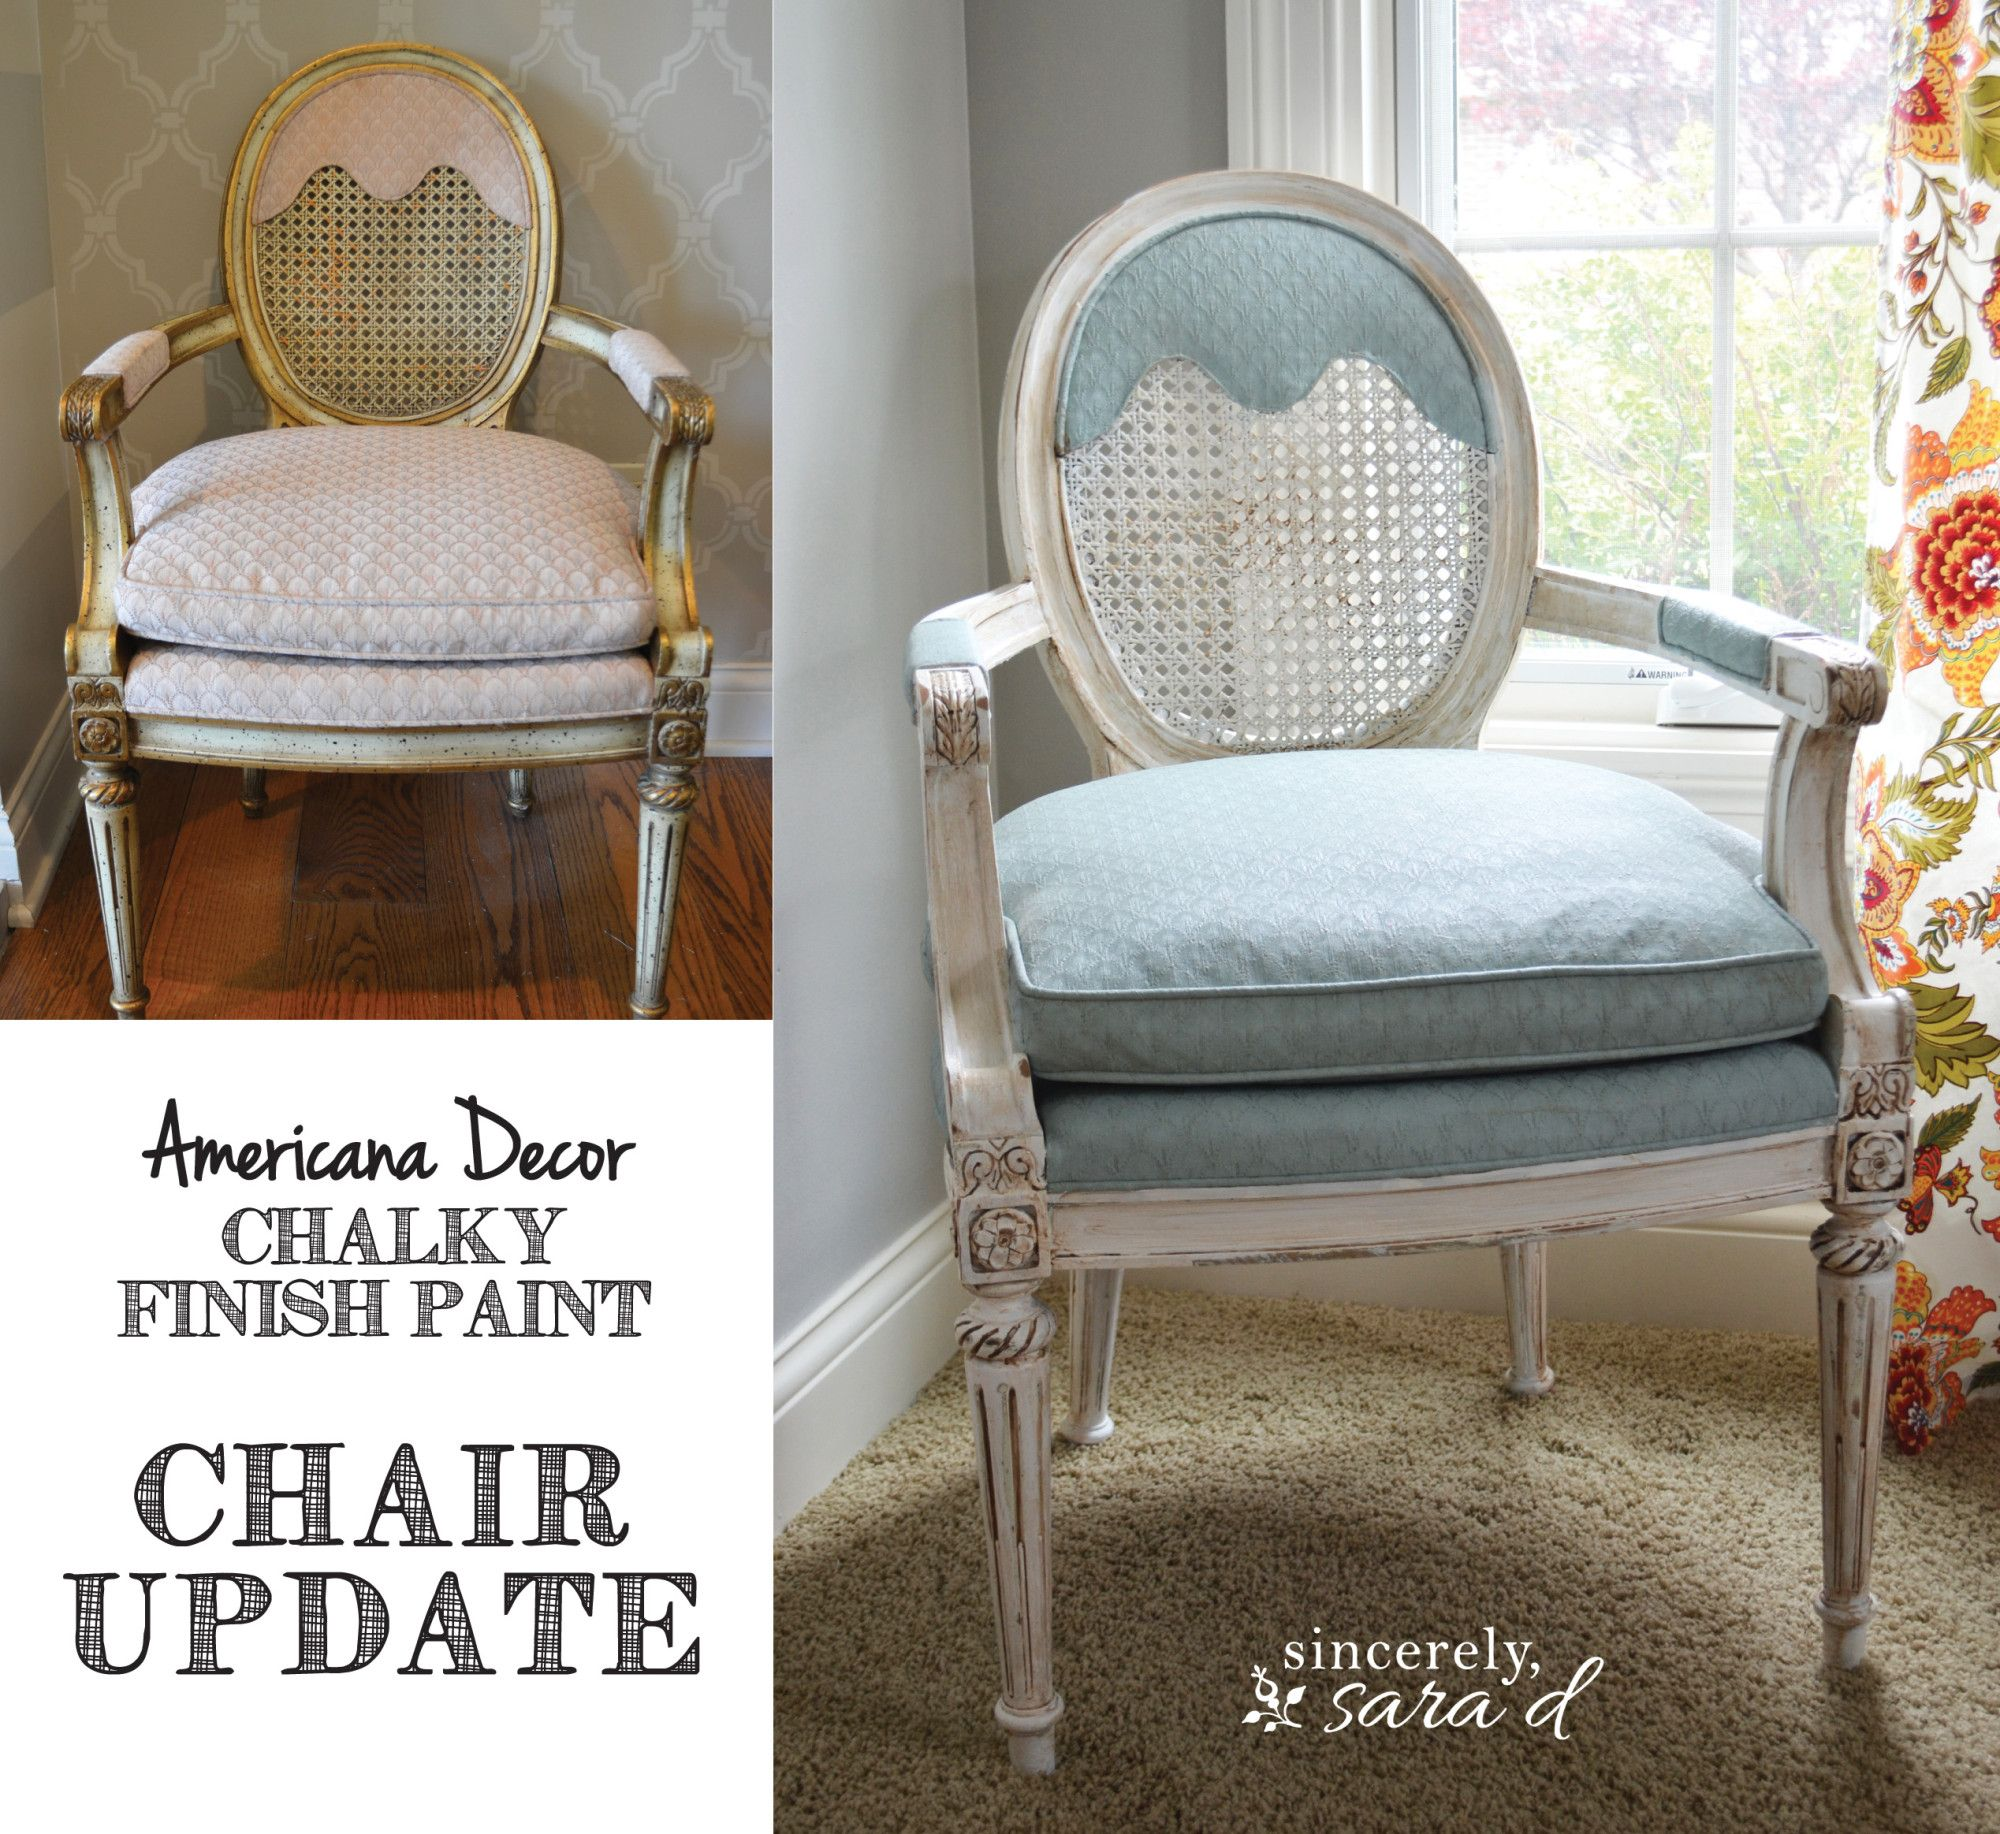 Painted Upholstered Chair using Chalk Paint #paintfabric